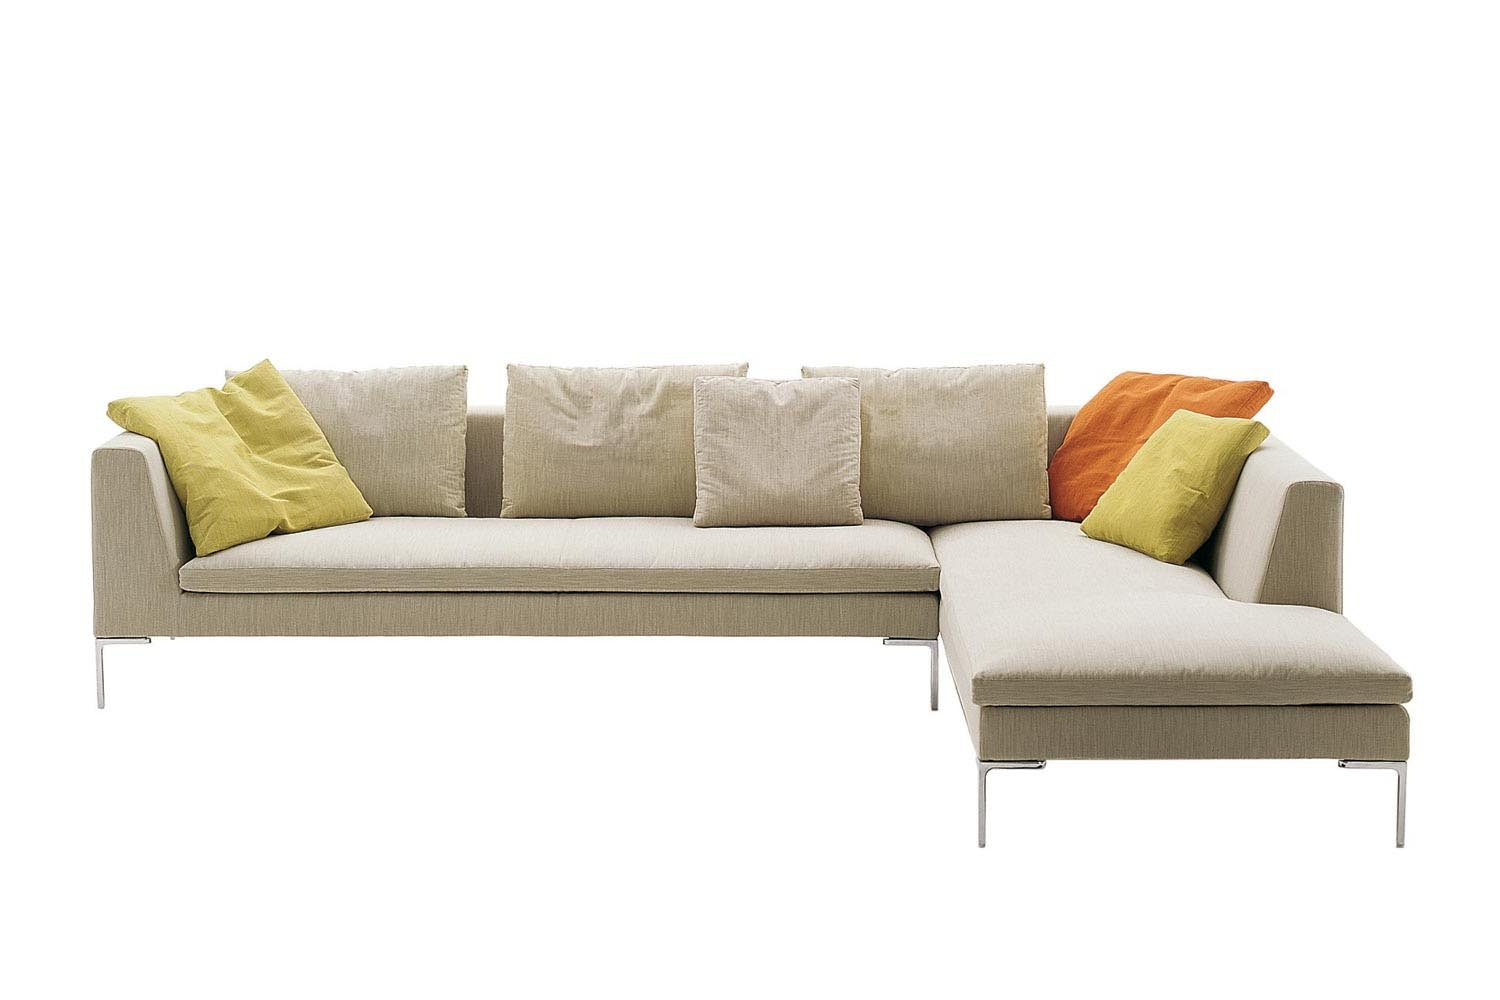 Charles Sofa by Antonio Citterio for B&B Italia